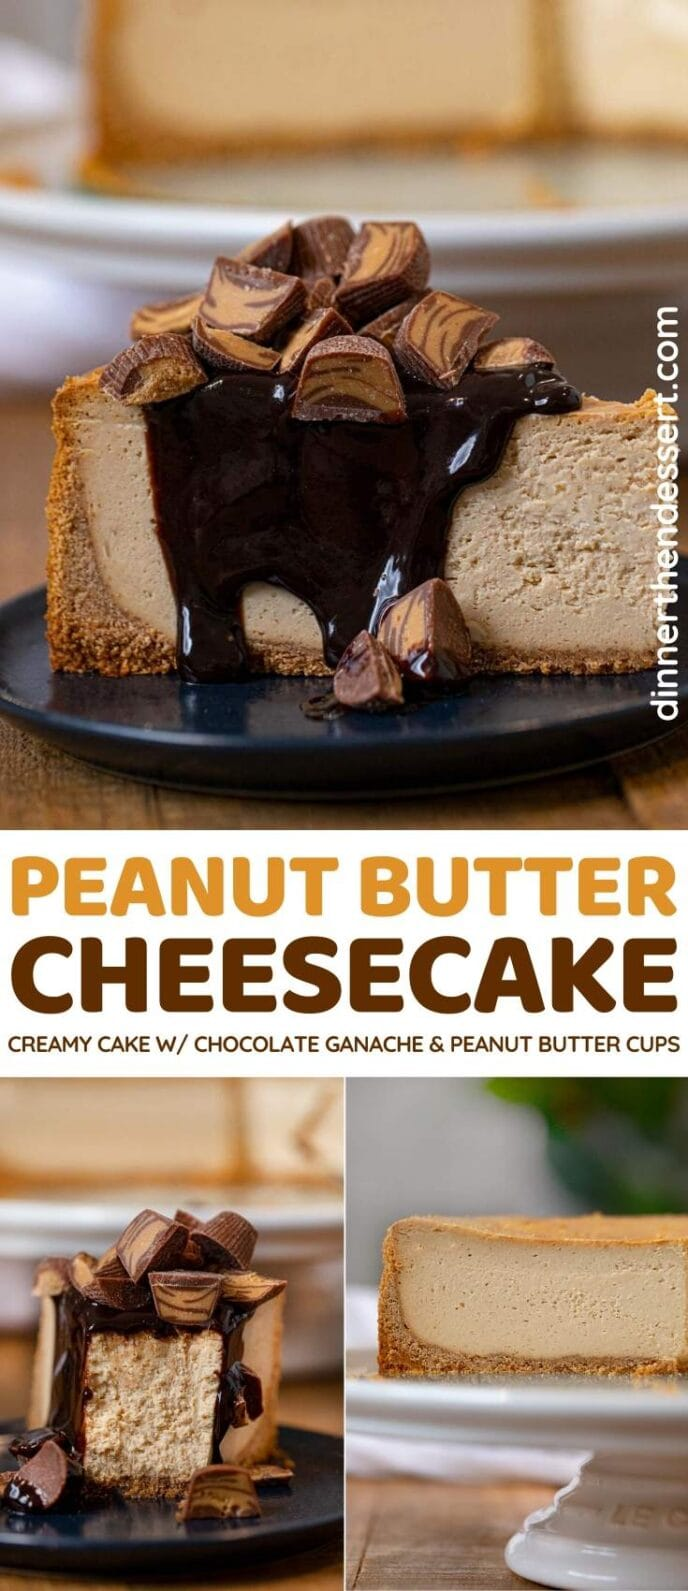 Peanut Butter Cheesecake collage